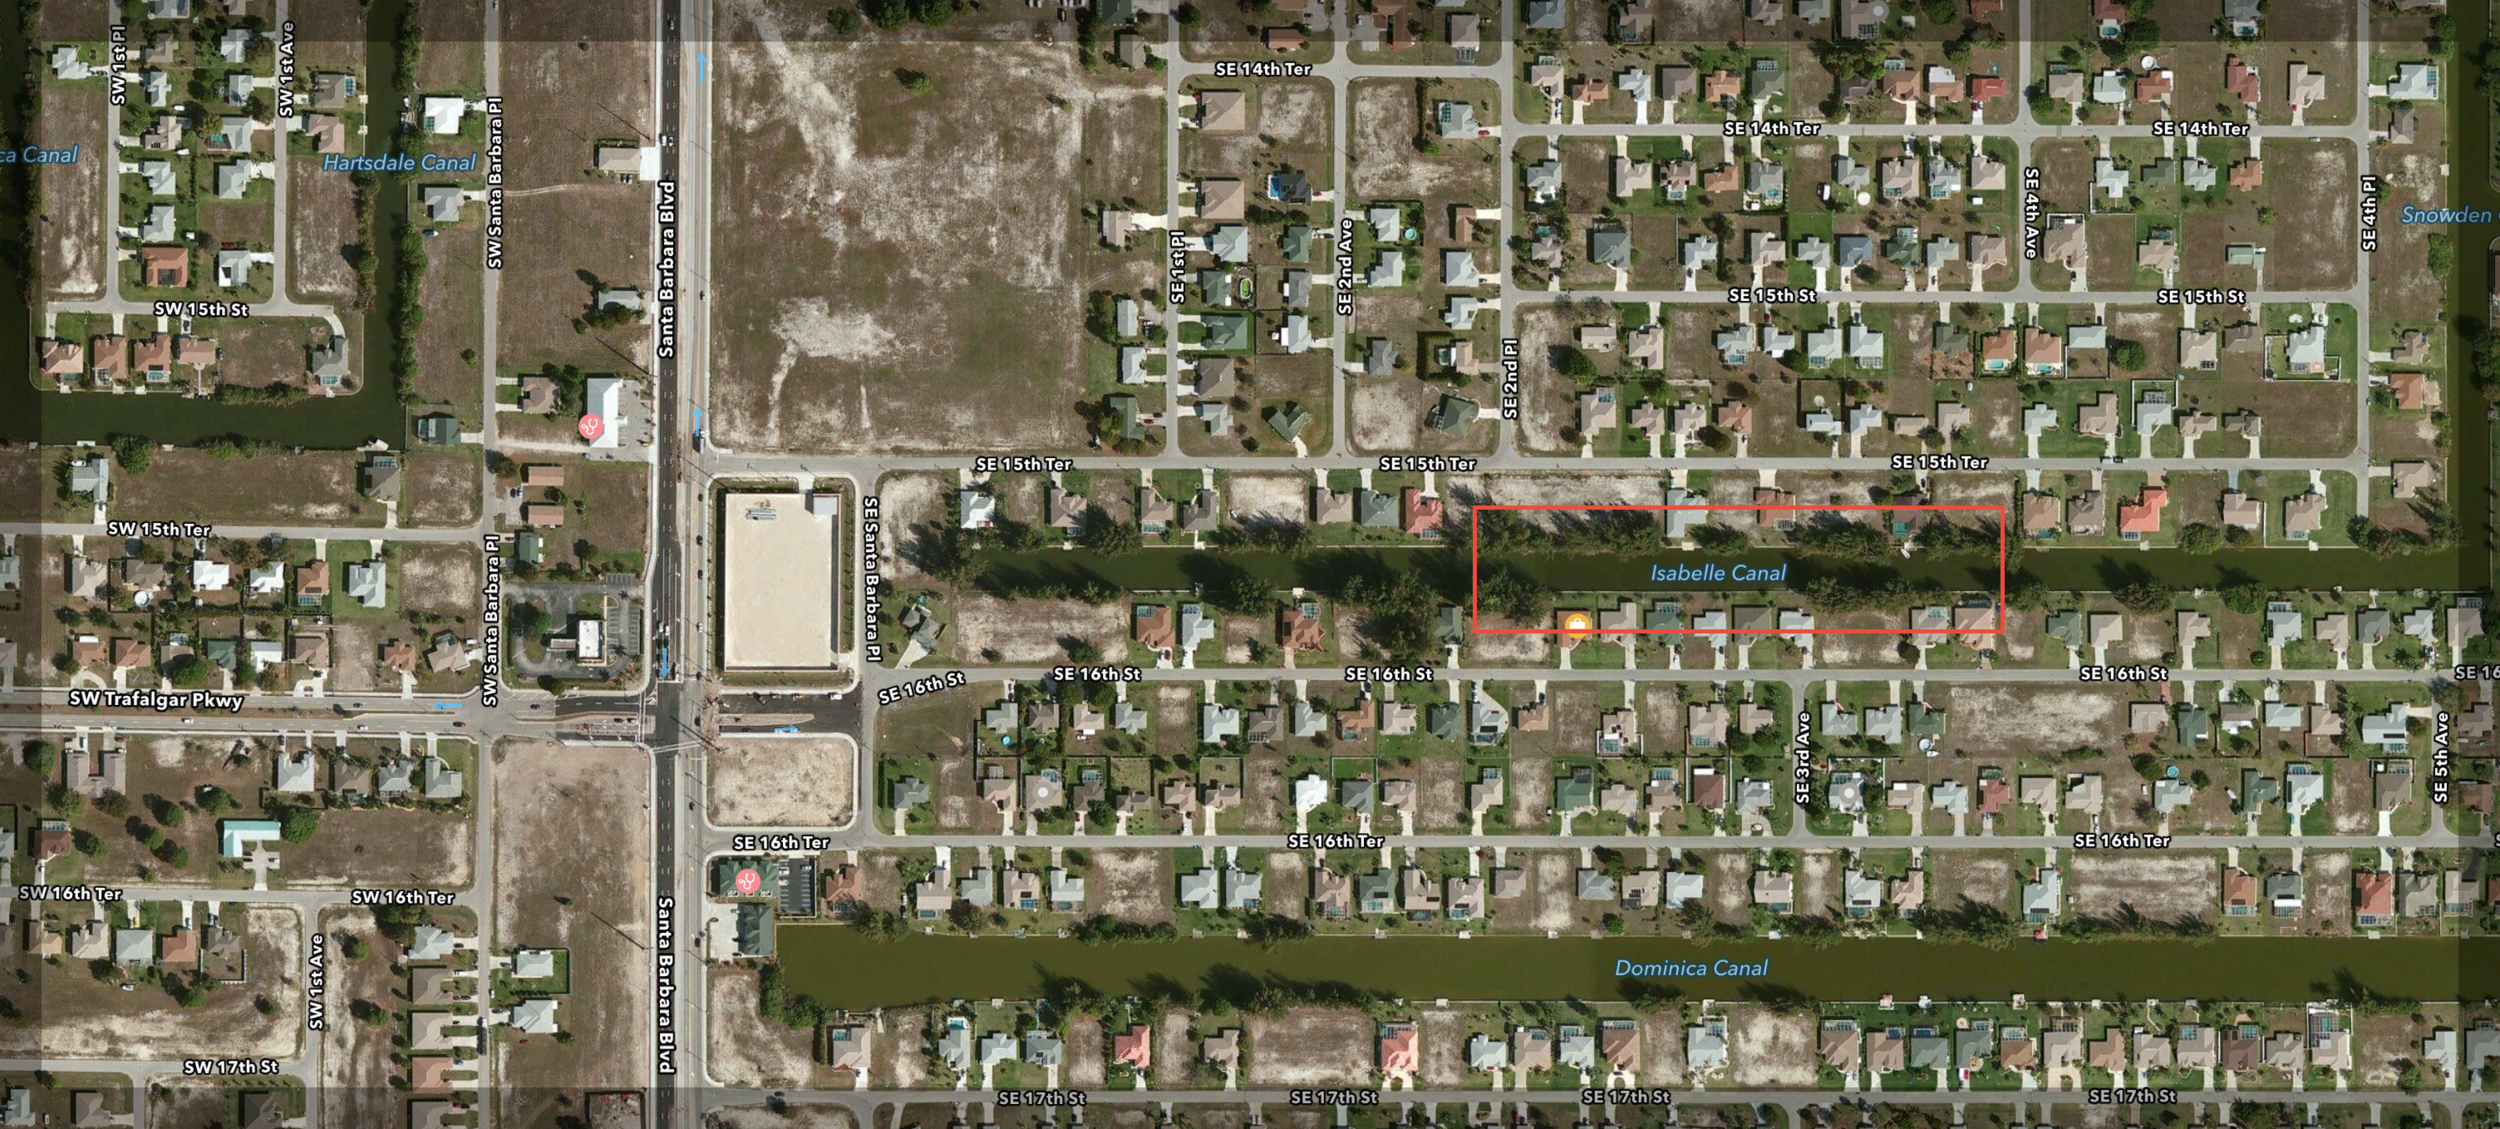 PHOTO: Map showing the area where the suspect, Wallie Julien, jumped into a canal. (Map Courtesy of  Apple, Inc. )